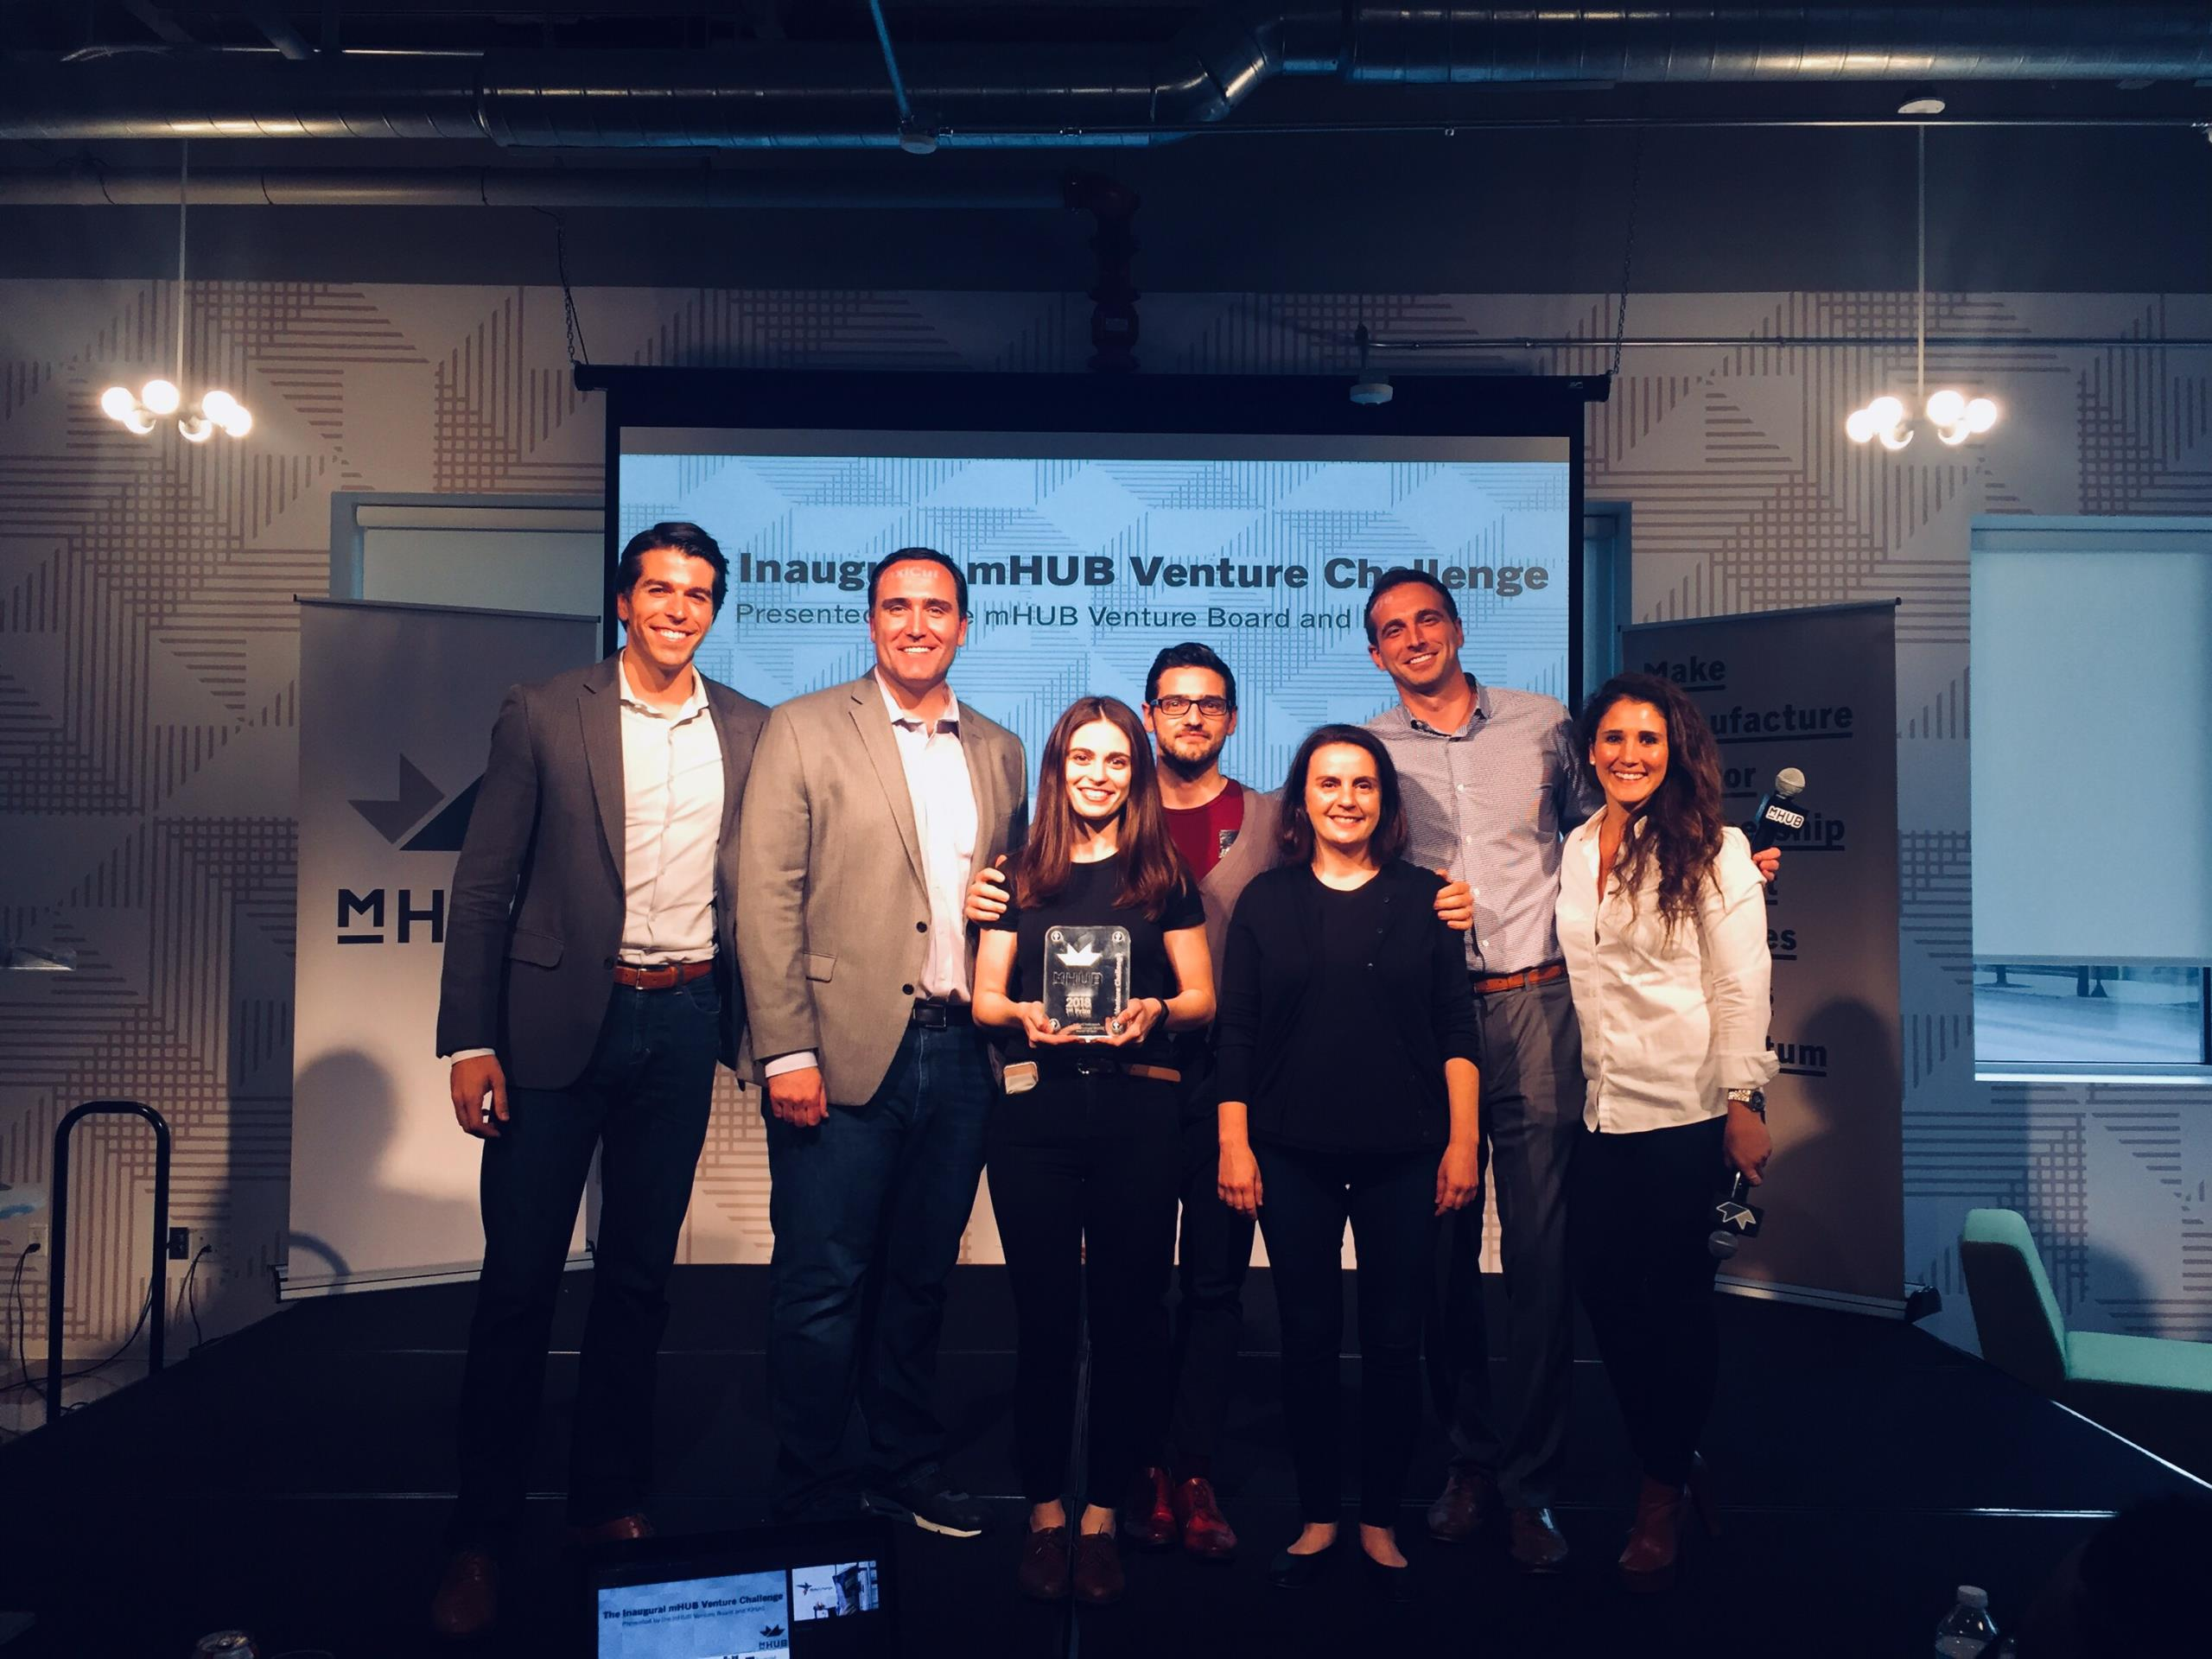 mHUB Venture Board Hosts First mHUB Venture Challenge